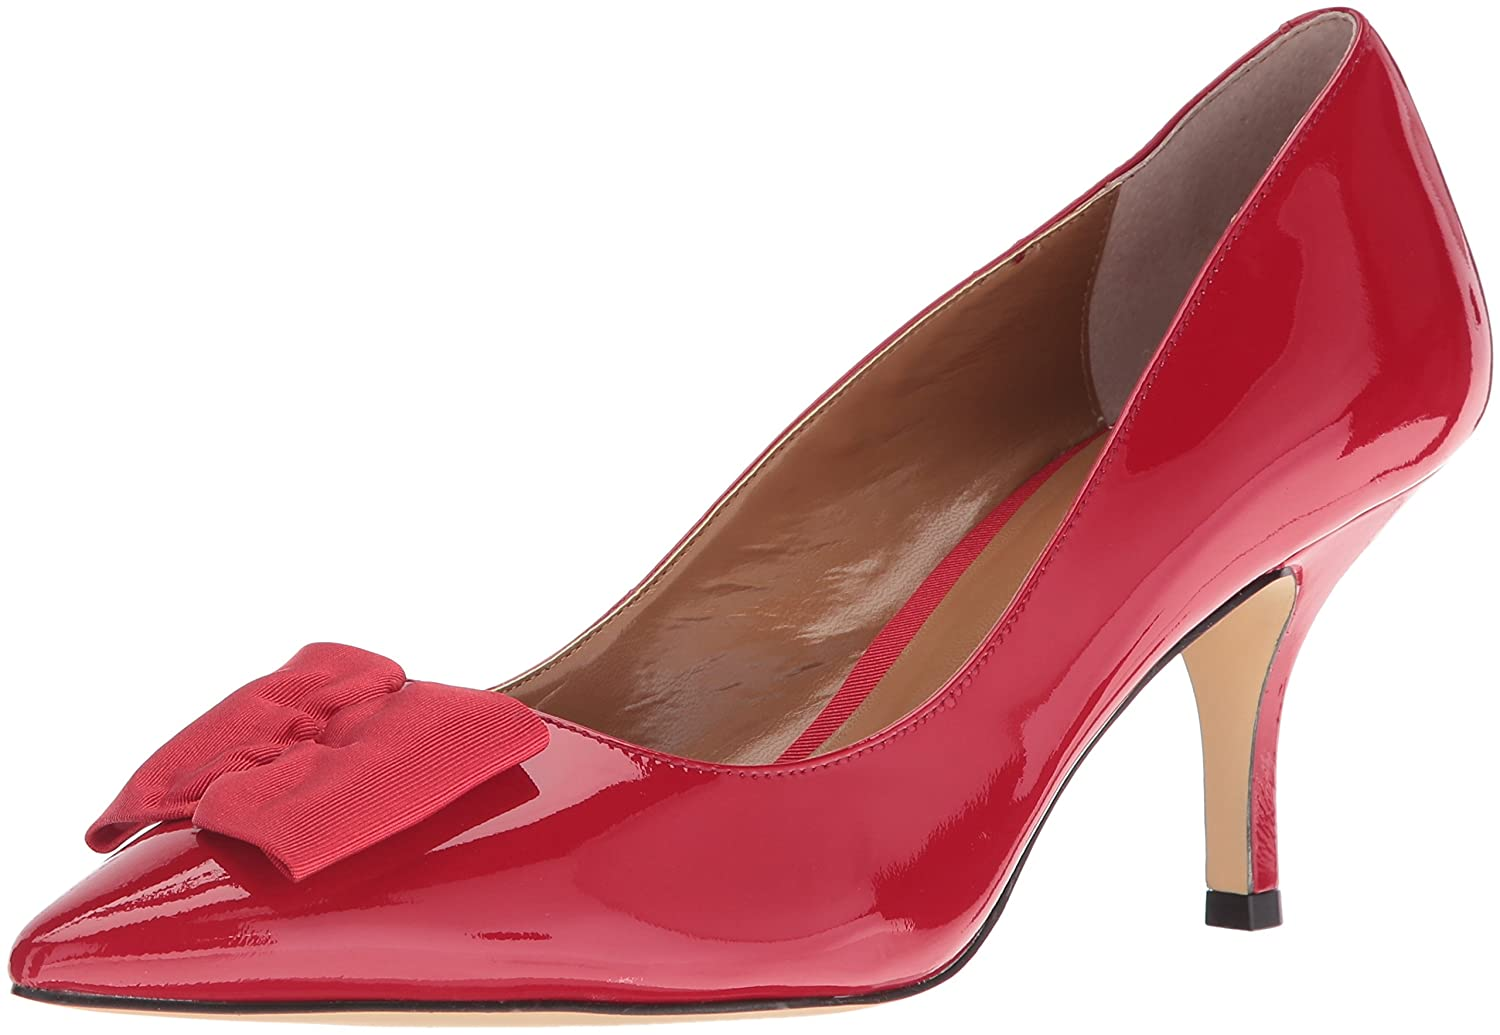 J.Renee Women's Camley Dress Pump B01CL1UQPE 12 W US|Red